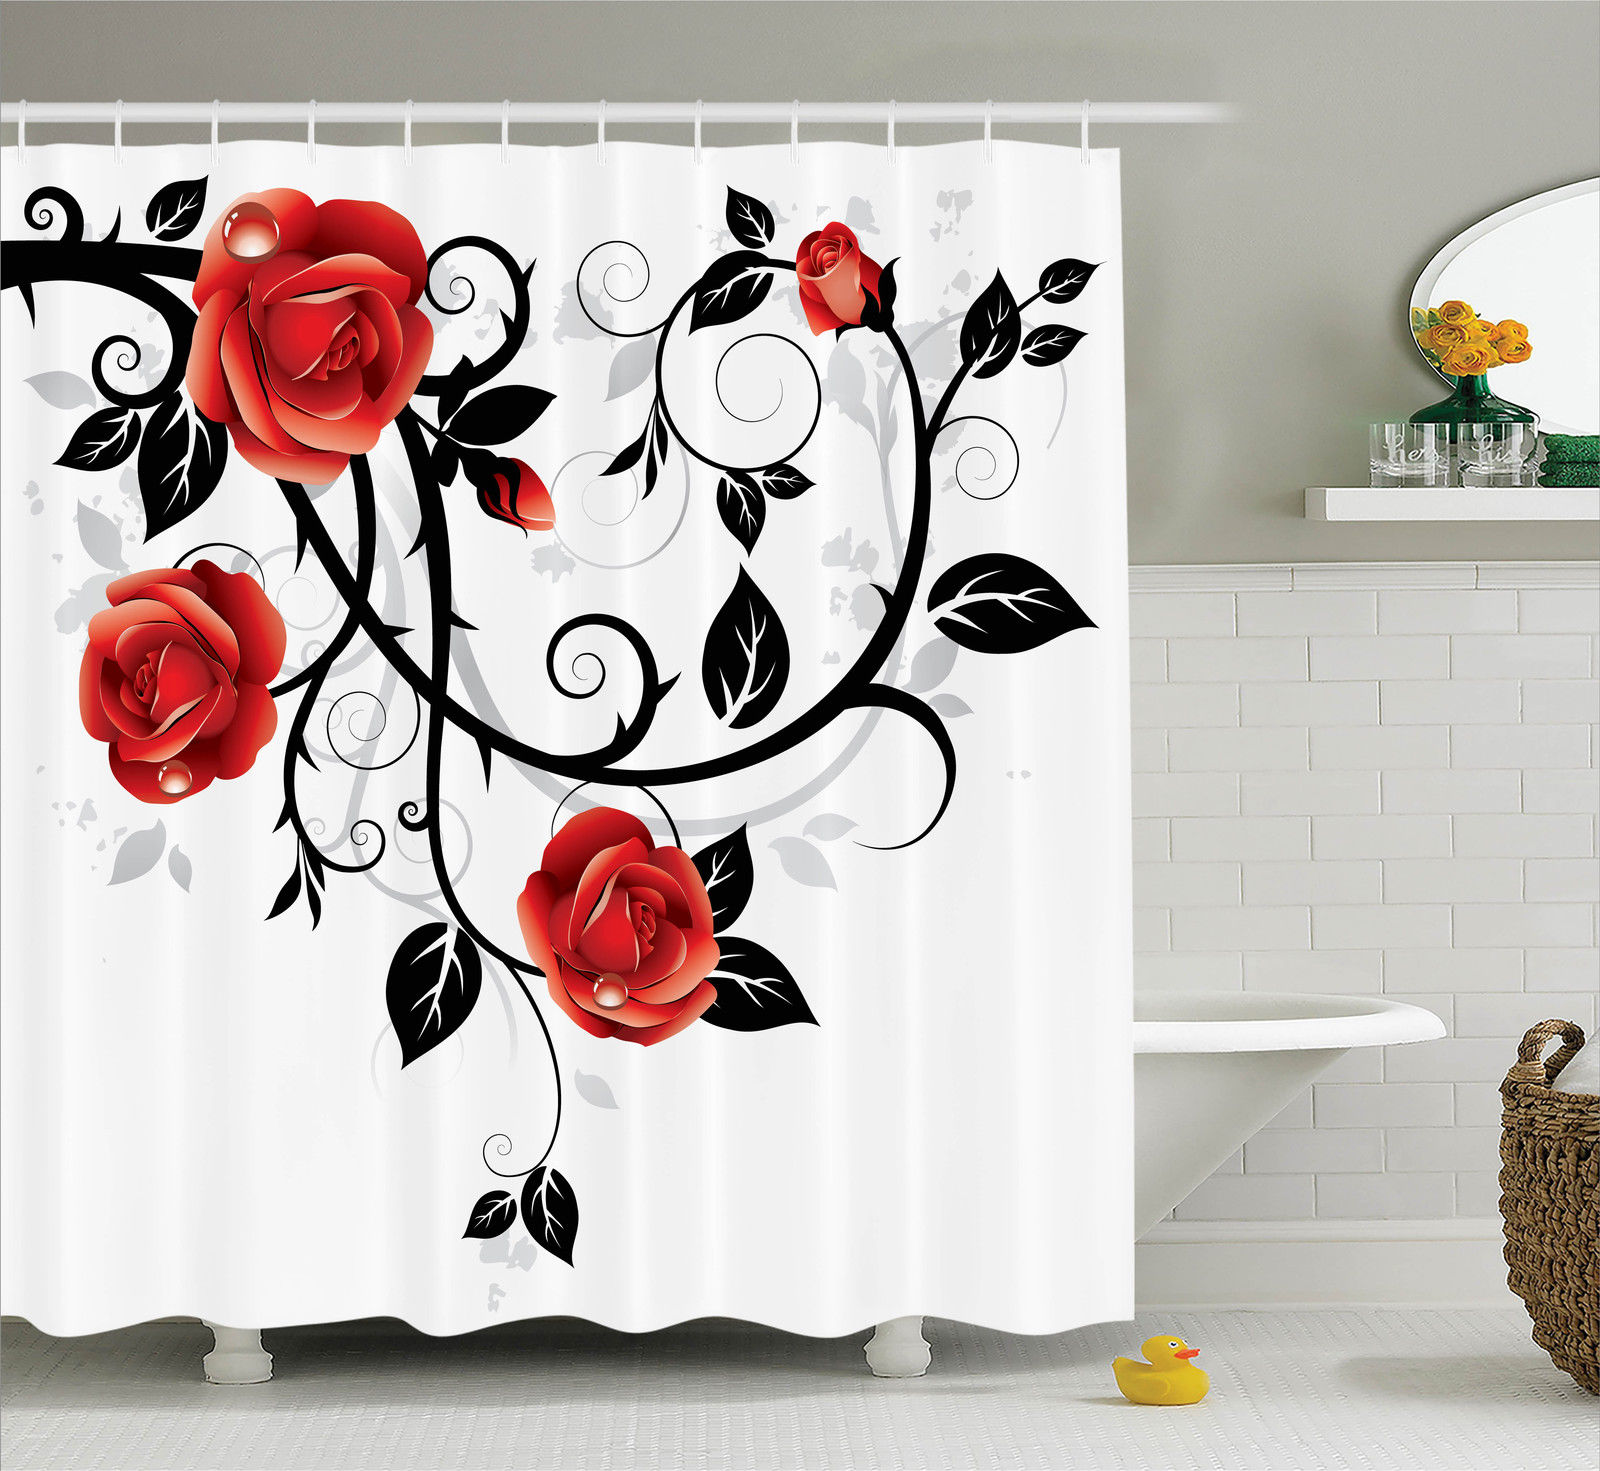 Gothic Decor Shower Curtain Set, Ornate Swirling Branches With Roses Garden Floral Gothic Grunge Style European Artwork,... by Kozmos